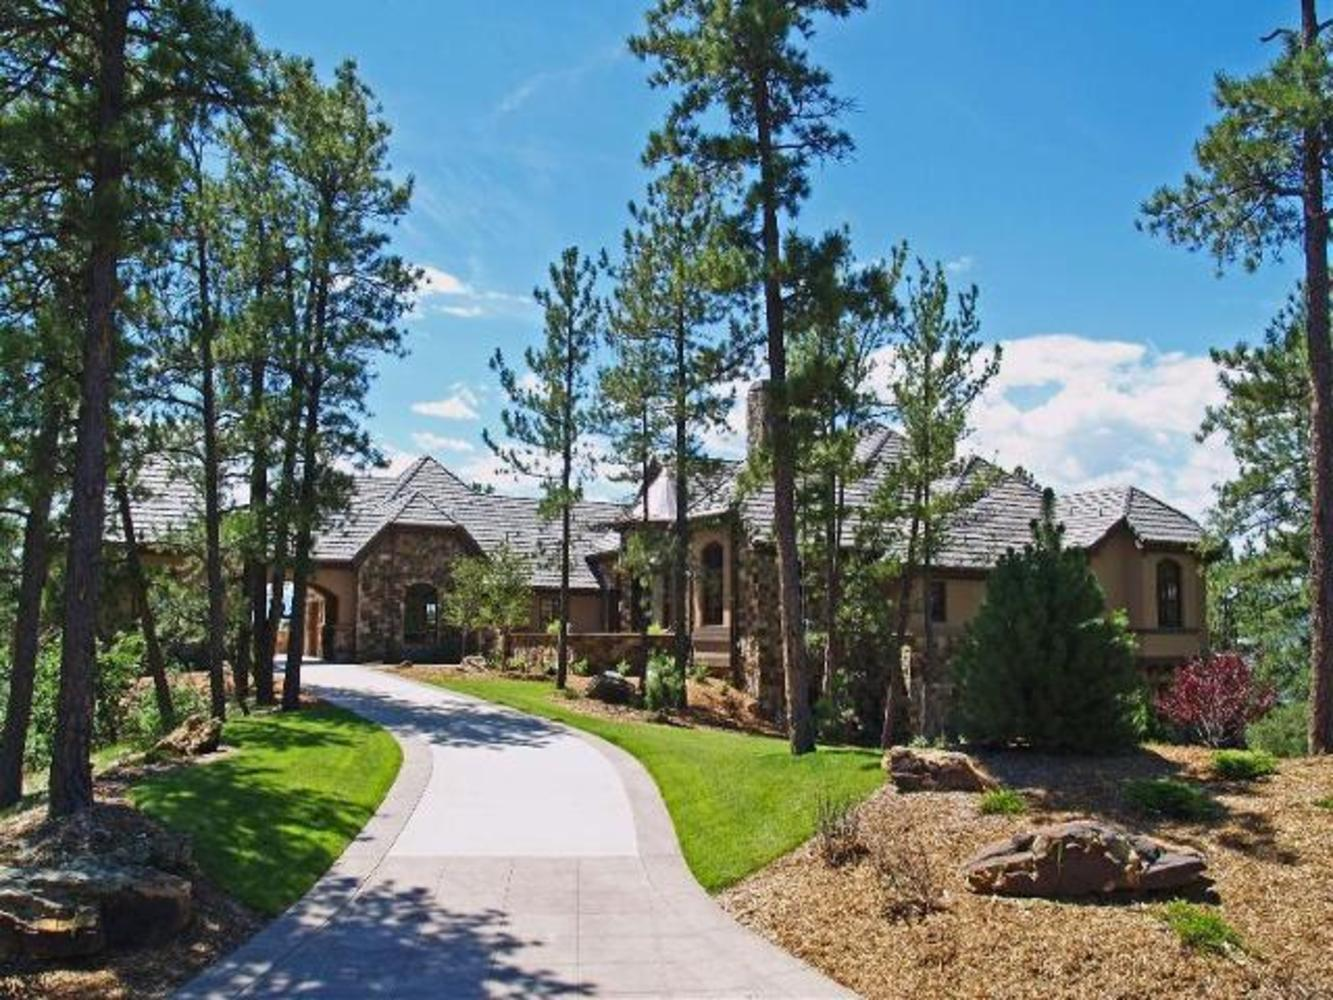 Single Family Home for Sale at 1 Eagle Pointe Ln Castle Pines Village, Castle Rock, Colorado, 80108 United States